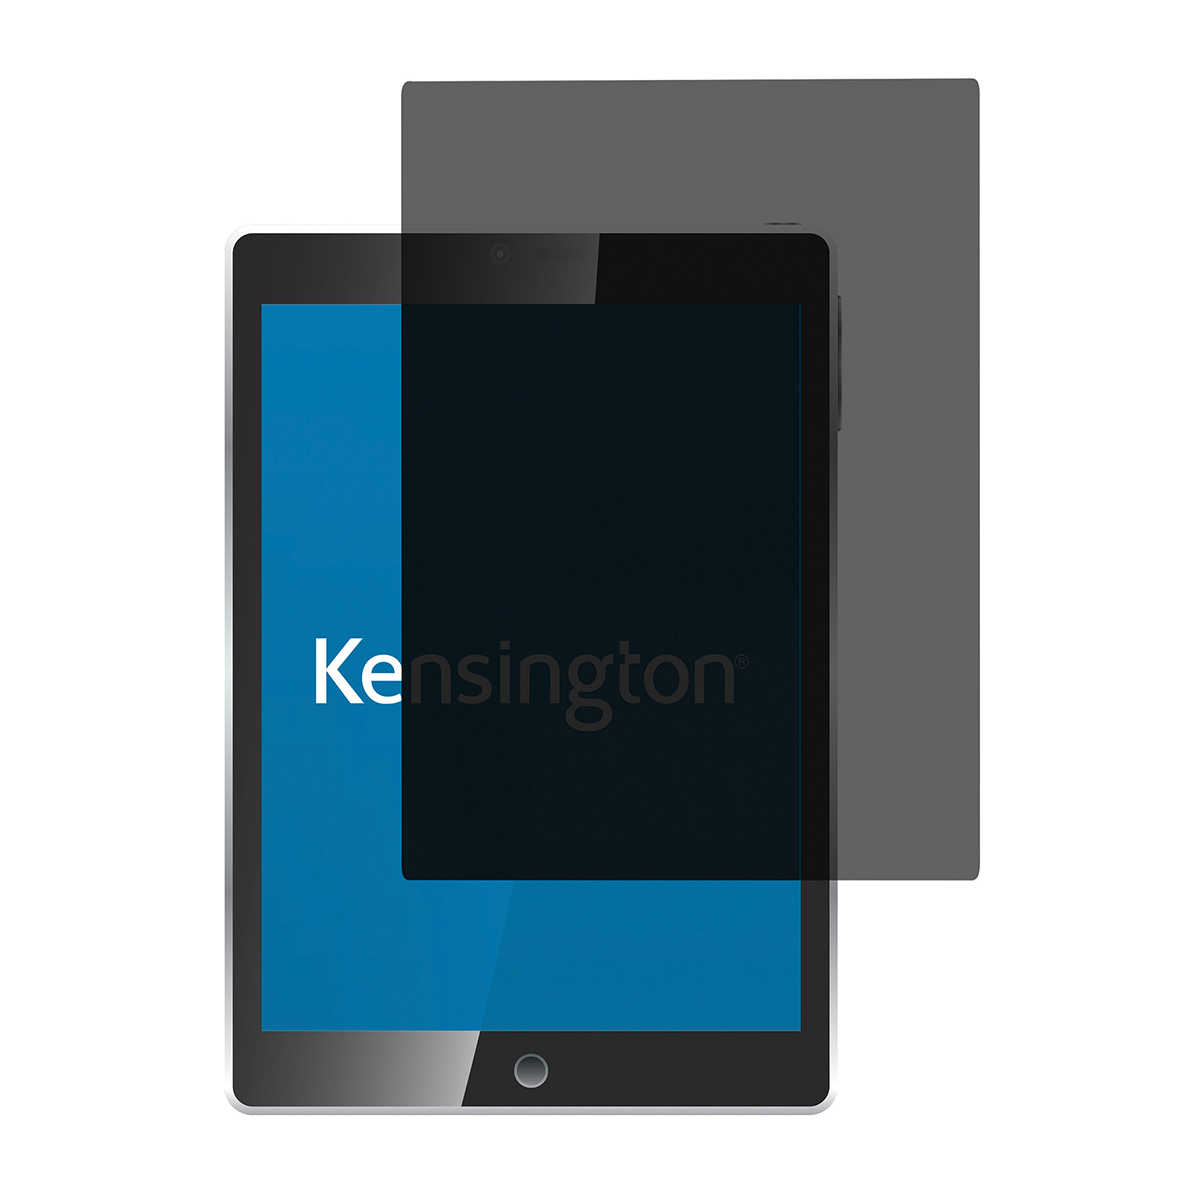 Kensington 626402 Privacy Filter 2 Way Adhesive for iPad Pro 12.9 Inch 2017